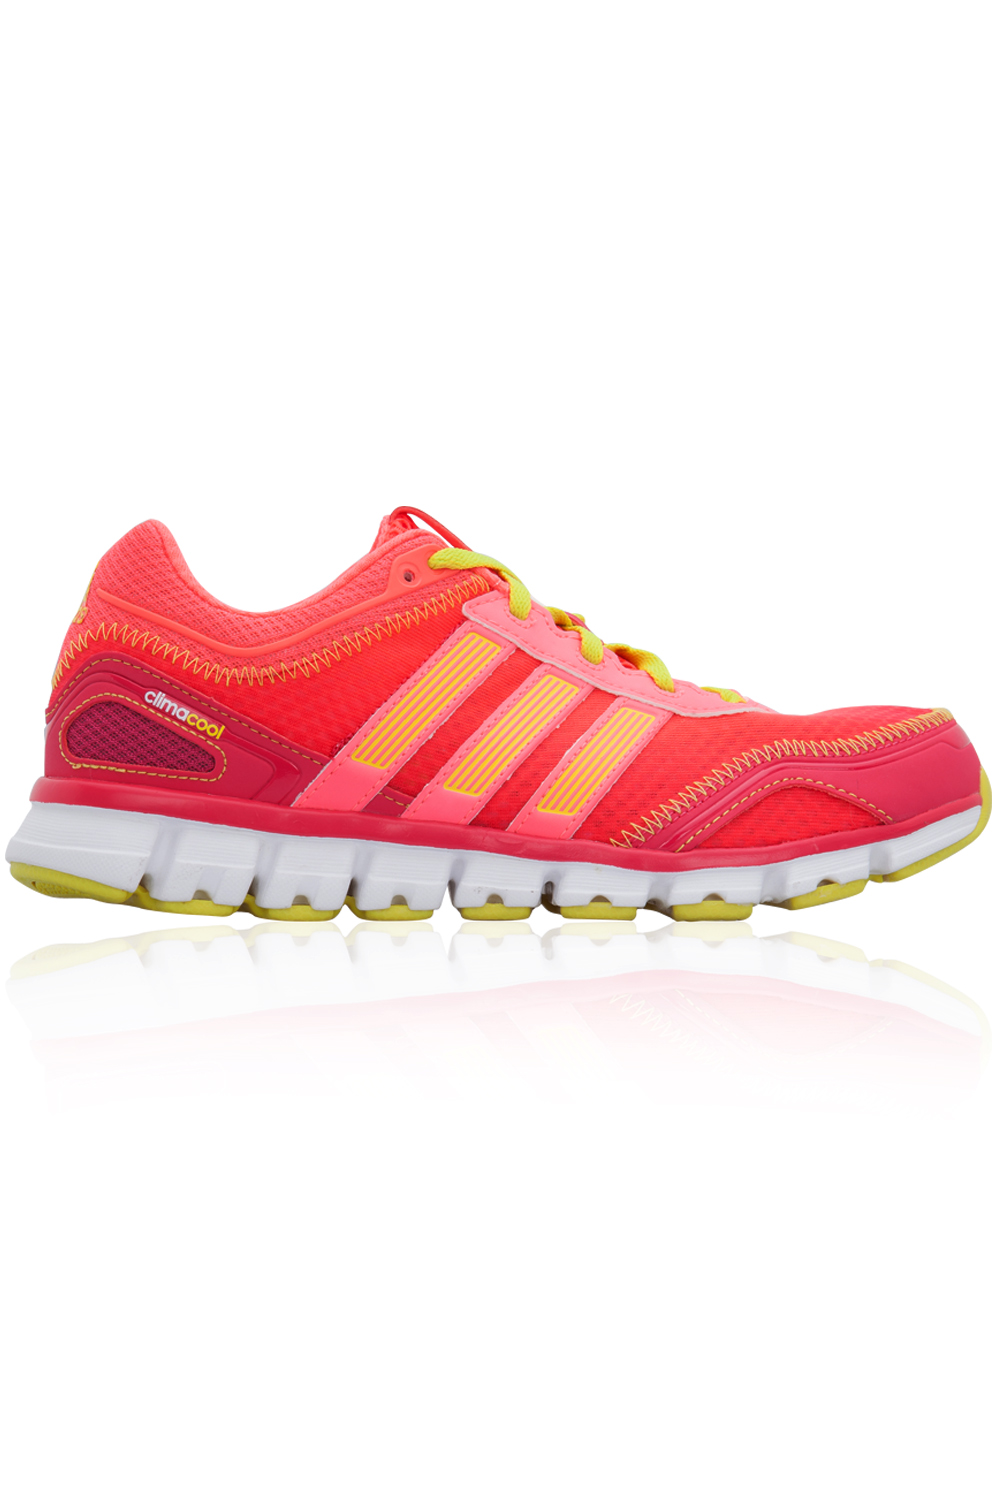 adidas climacool modulation 2 w running shoes pink 365ist